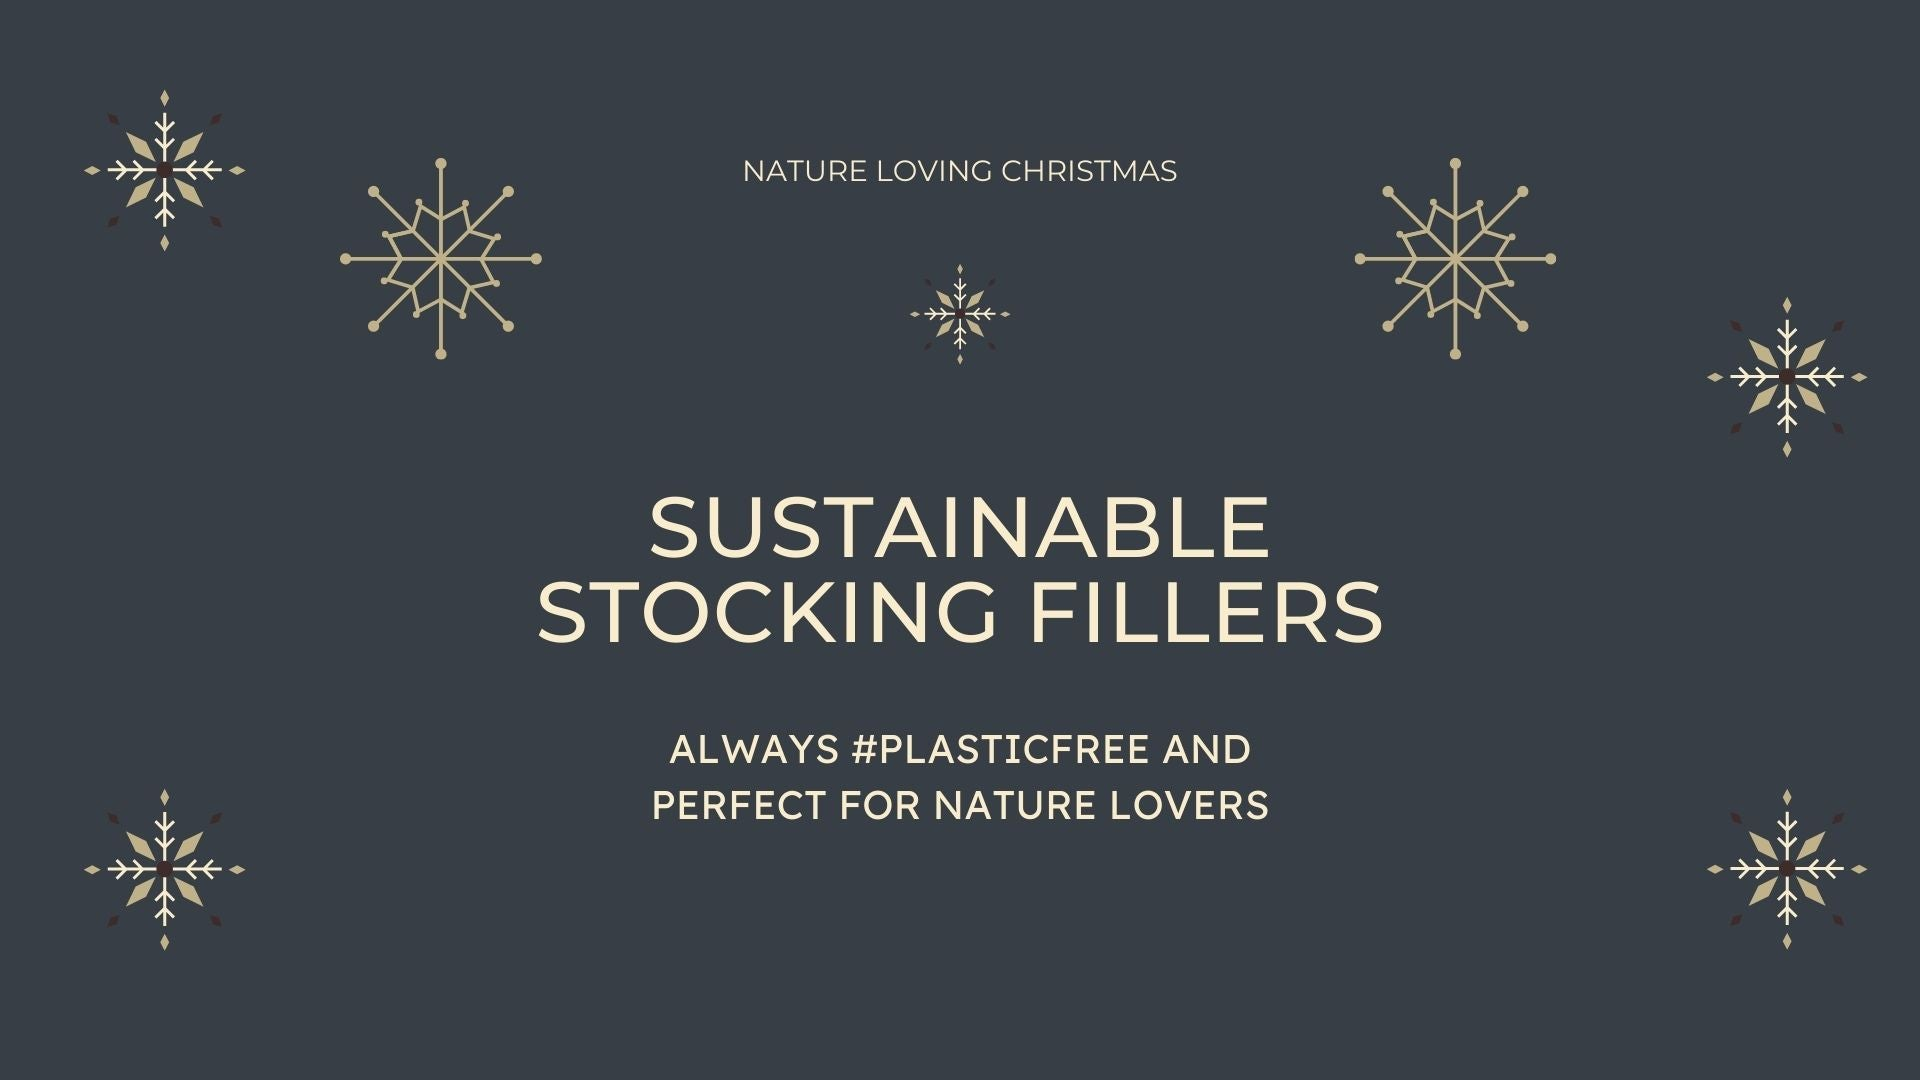 Sustainable stocking fillers christmas 2020